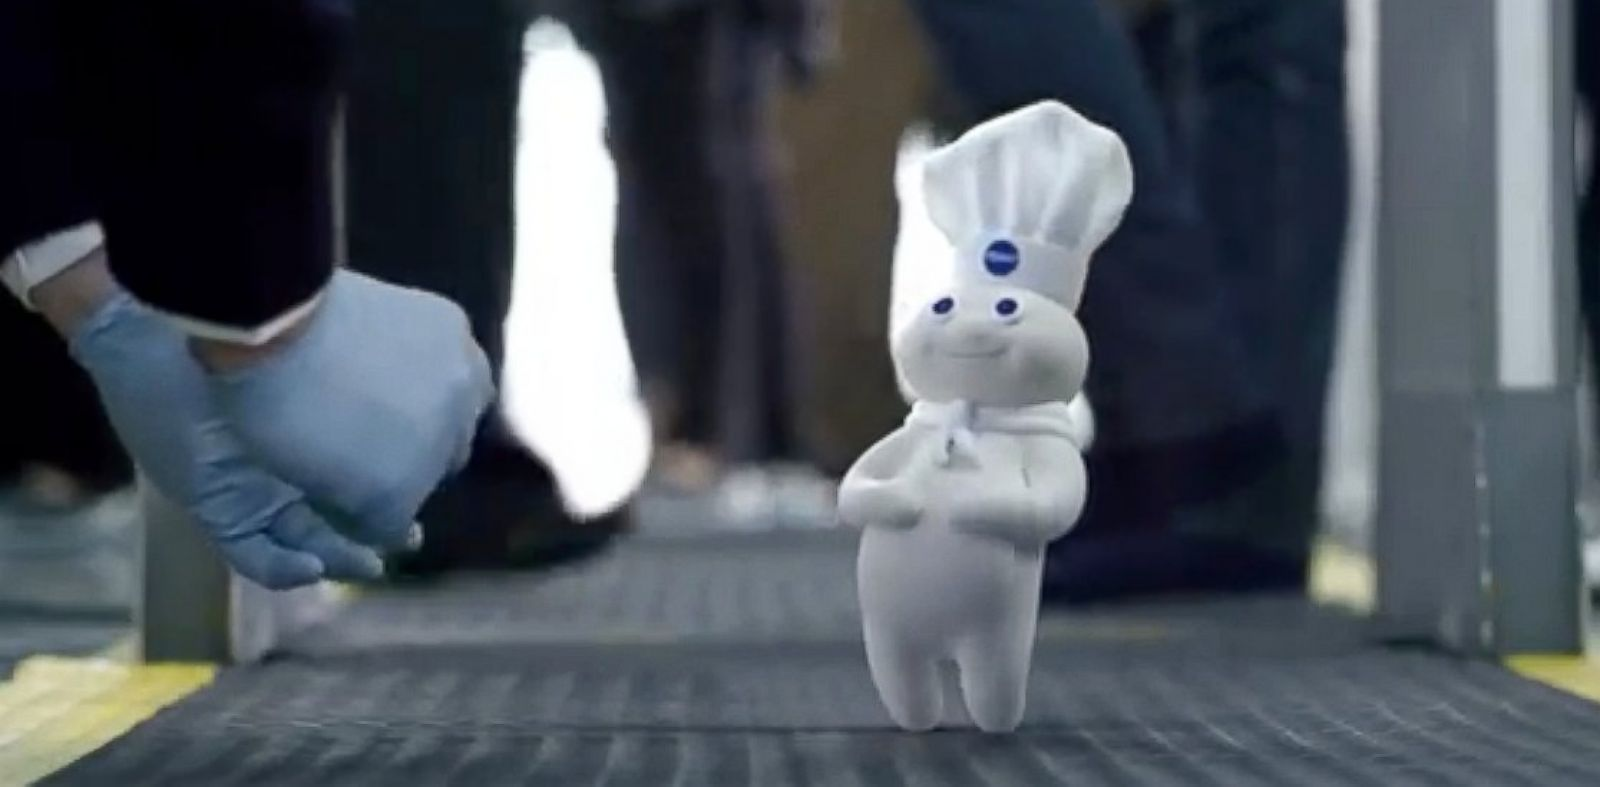 PHOTO: The Pillsbury Doughboy is featured in commercials for companies other than Pillsbury, including this Geico Insurance advertisement.